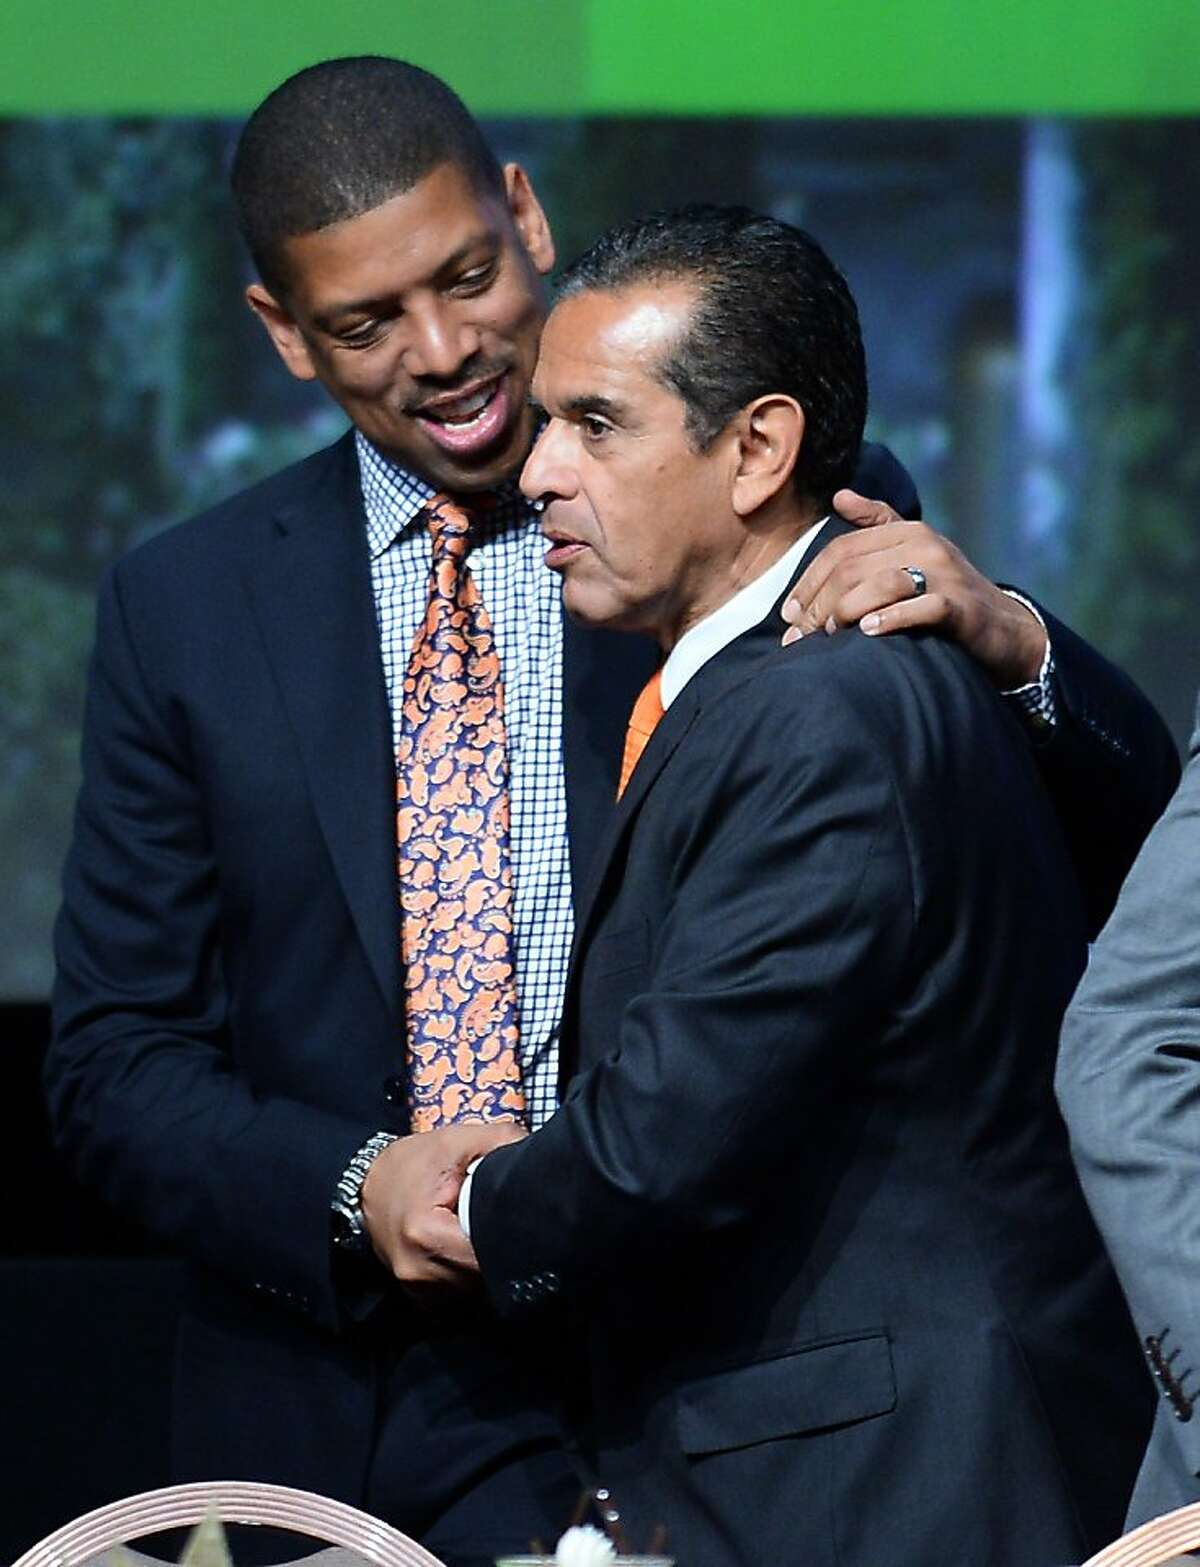 LAS VEGAS, NV - JUNE 21: Sacramento Mayor Kevin Johnson (L) talks with Los Angeles Mayor Antonio Villaraigosa at the 81st annual U.S. Conference of Mayors at the Mandalay Bay Convention Center on June 21, 2013 in Las Vegas, Nevada. U.S. Vice President Joe Biden spoke at the conference addressing about 150 mayors from across the country on issues including the economy, immigration reform and gun violence. (Photo by Ethan Miller/Getty Images)